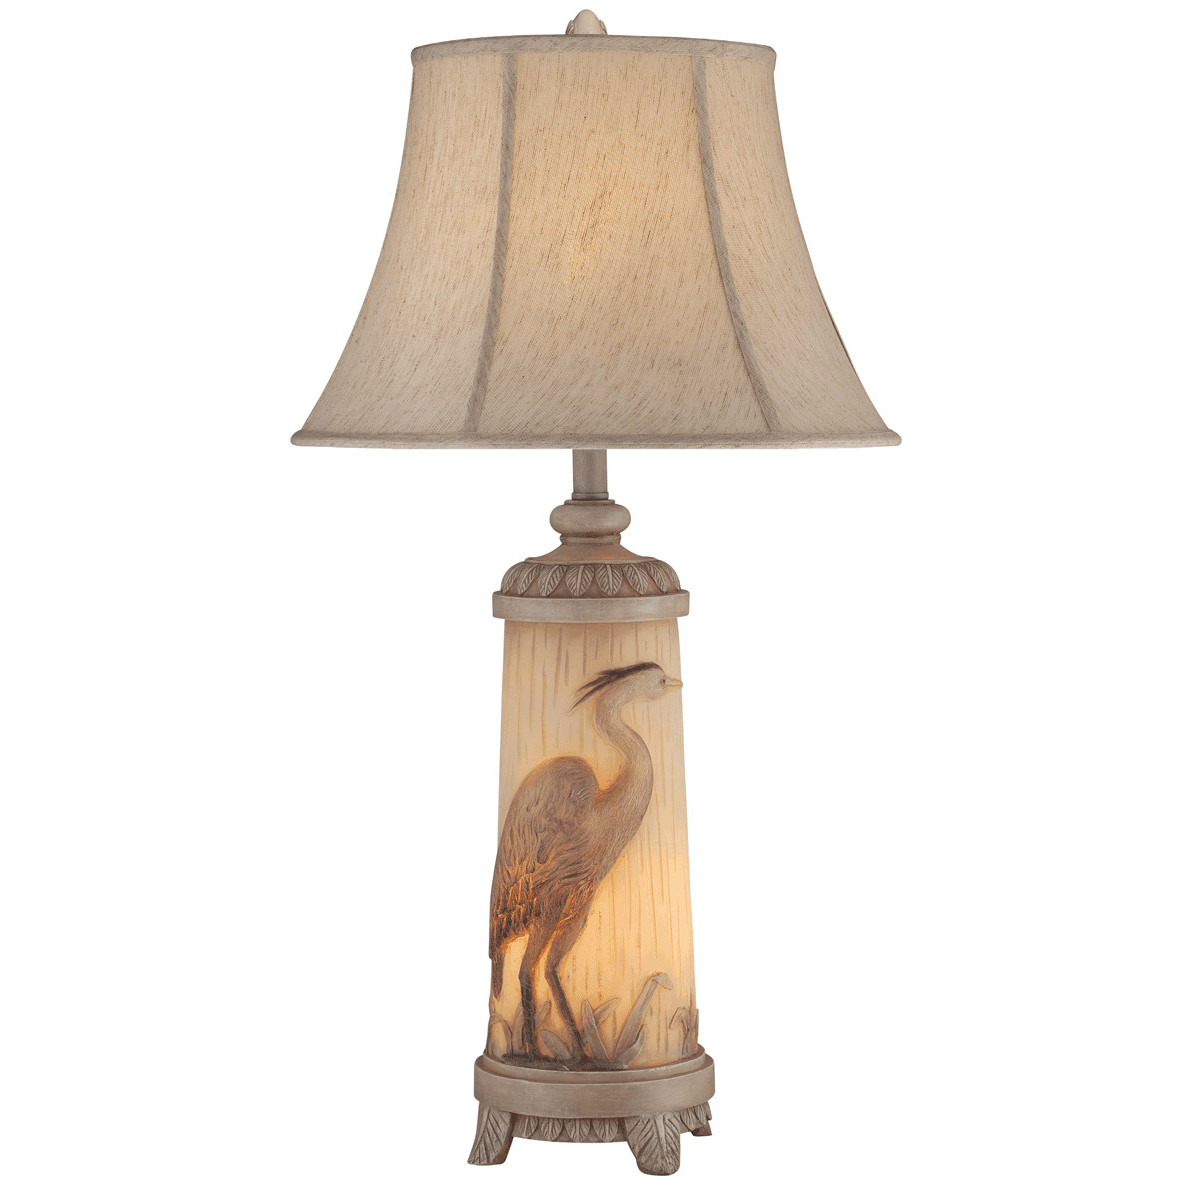 Shop nautical coastal table lamps beach themed heron night light table lamp geotapseo Images